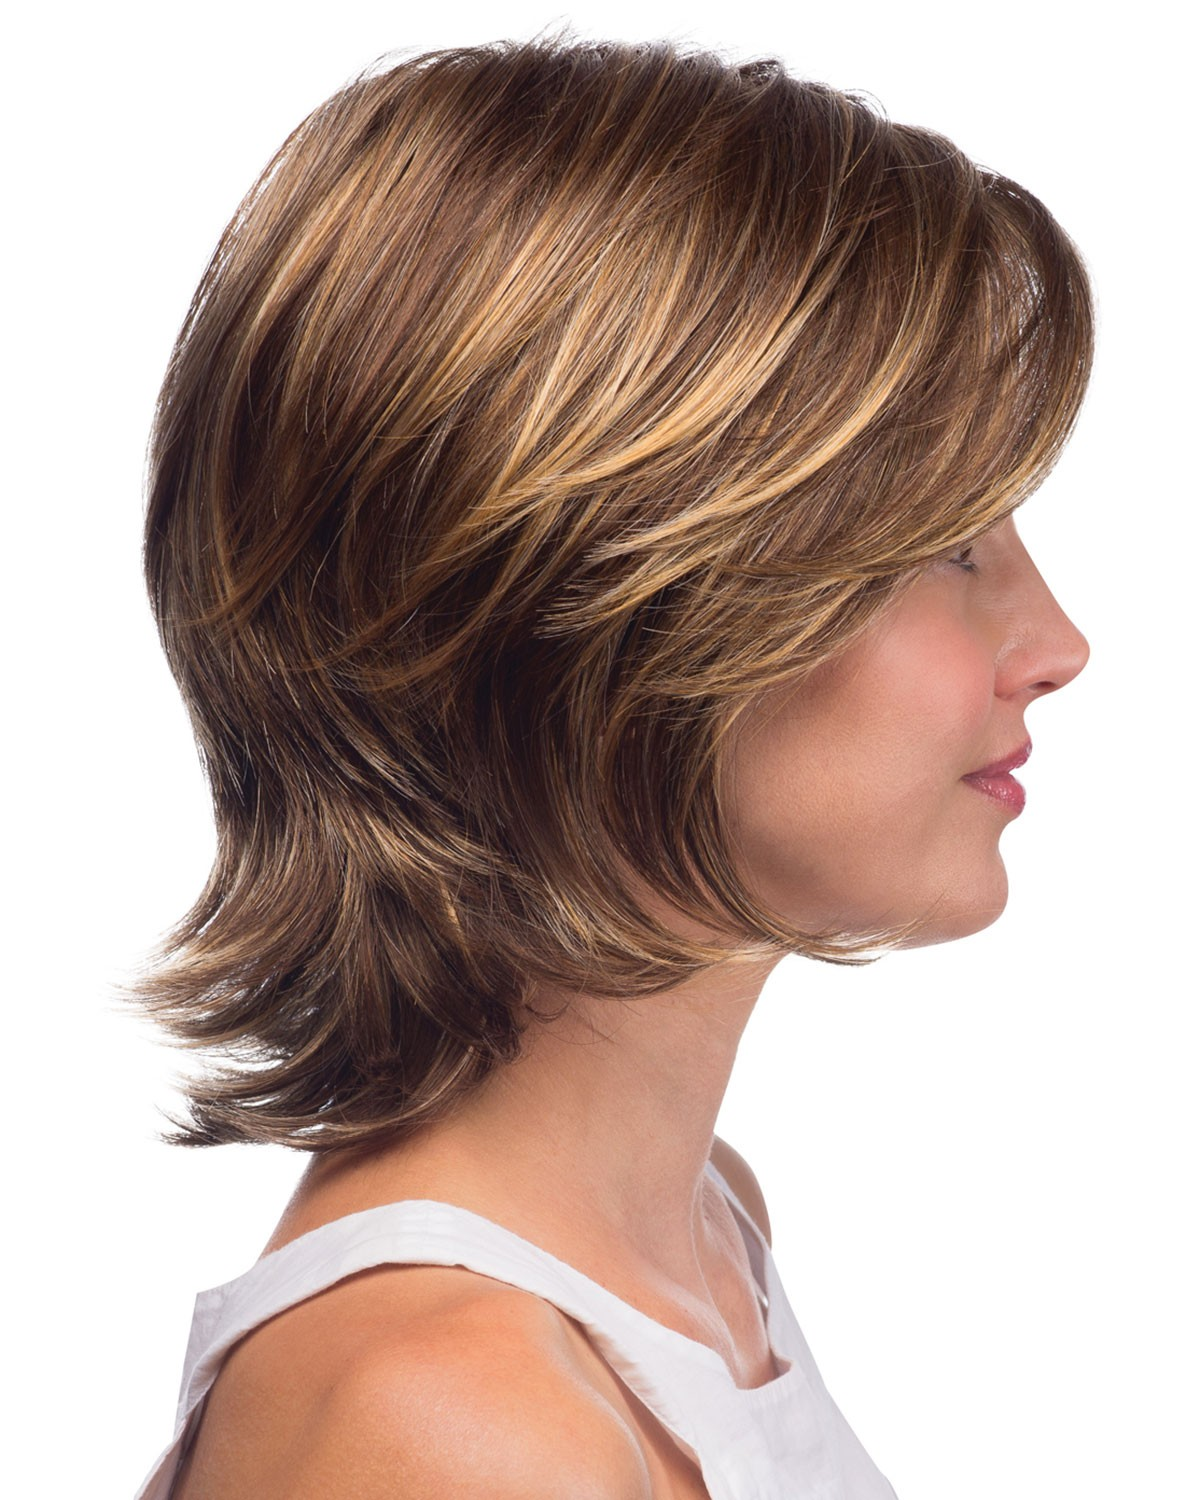 Medium Length Layered Shag Style Wig With Side Swept